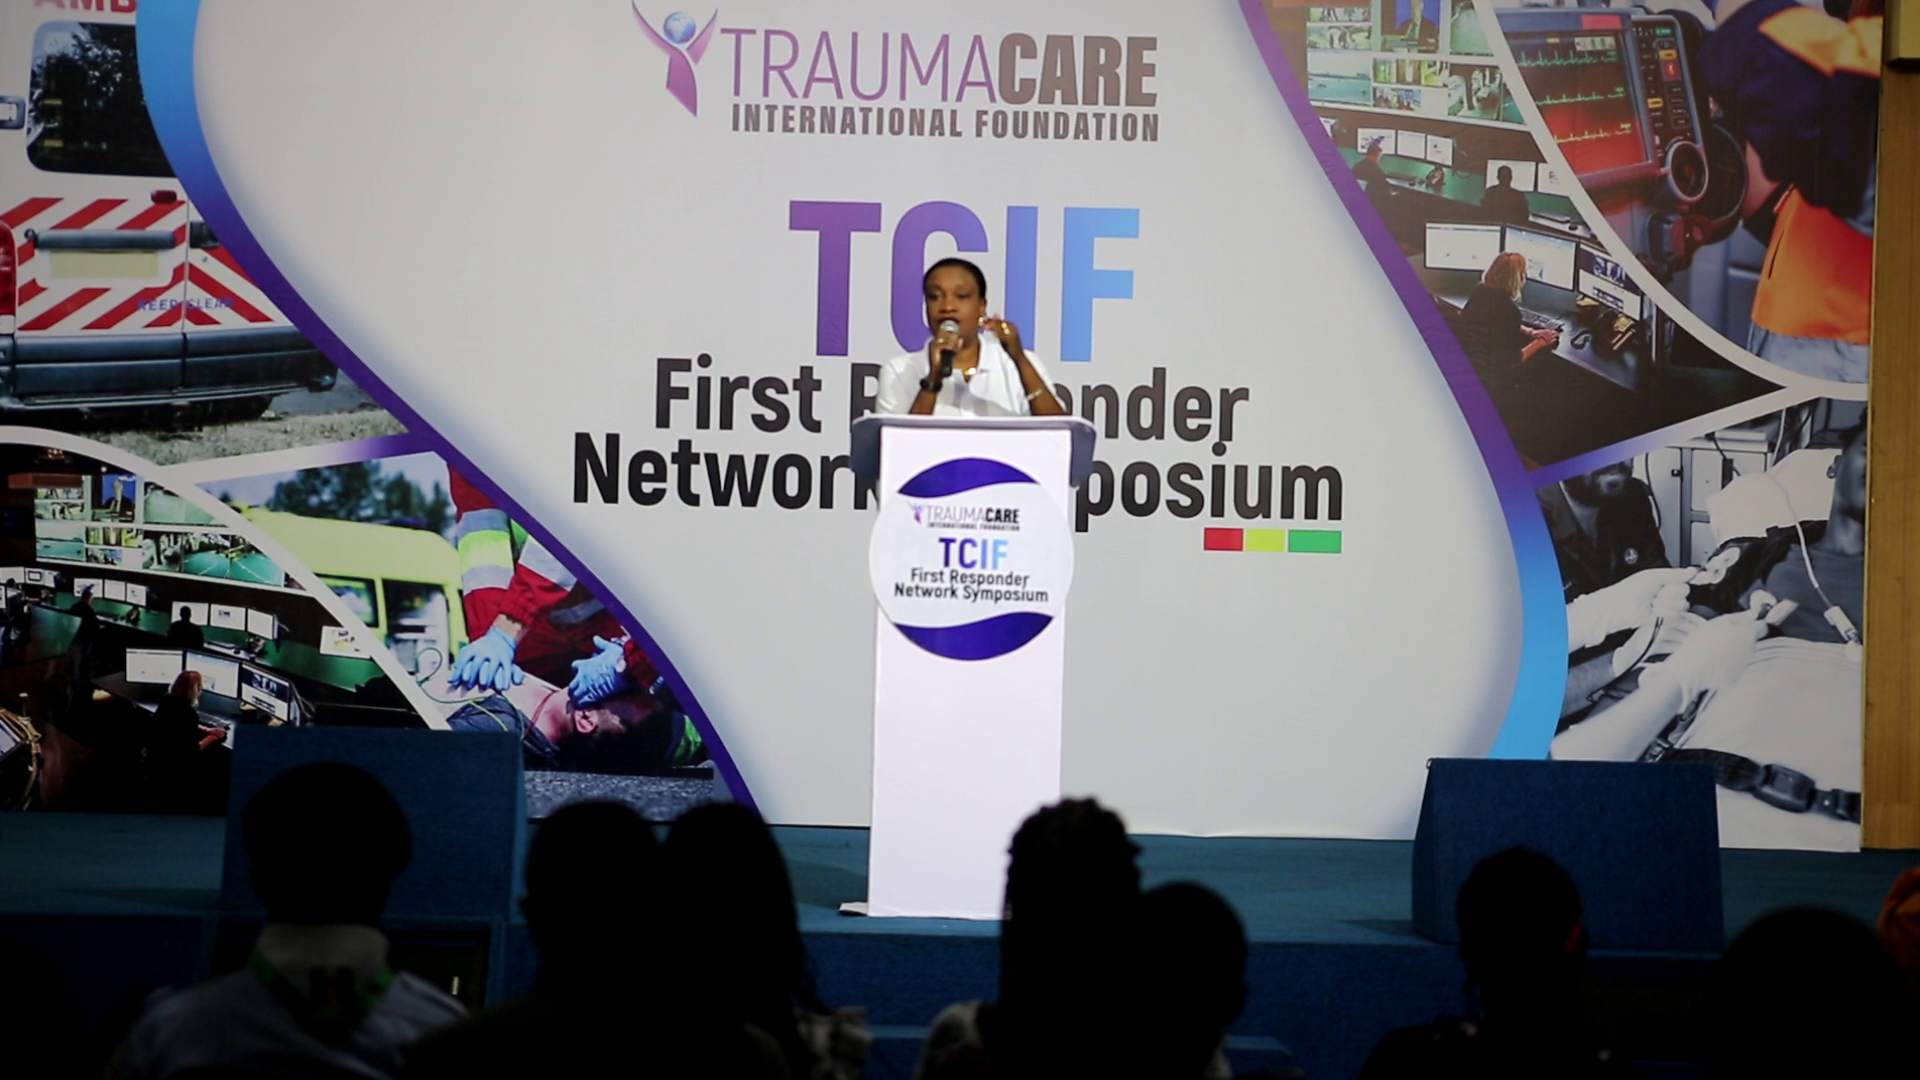 TCIF First Responder Network Online Symposium